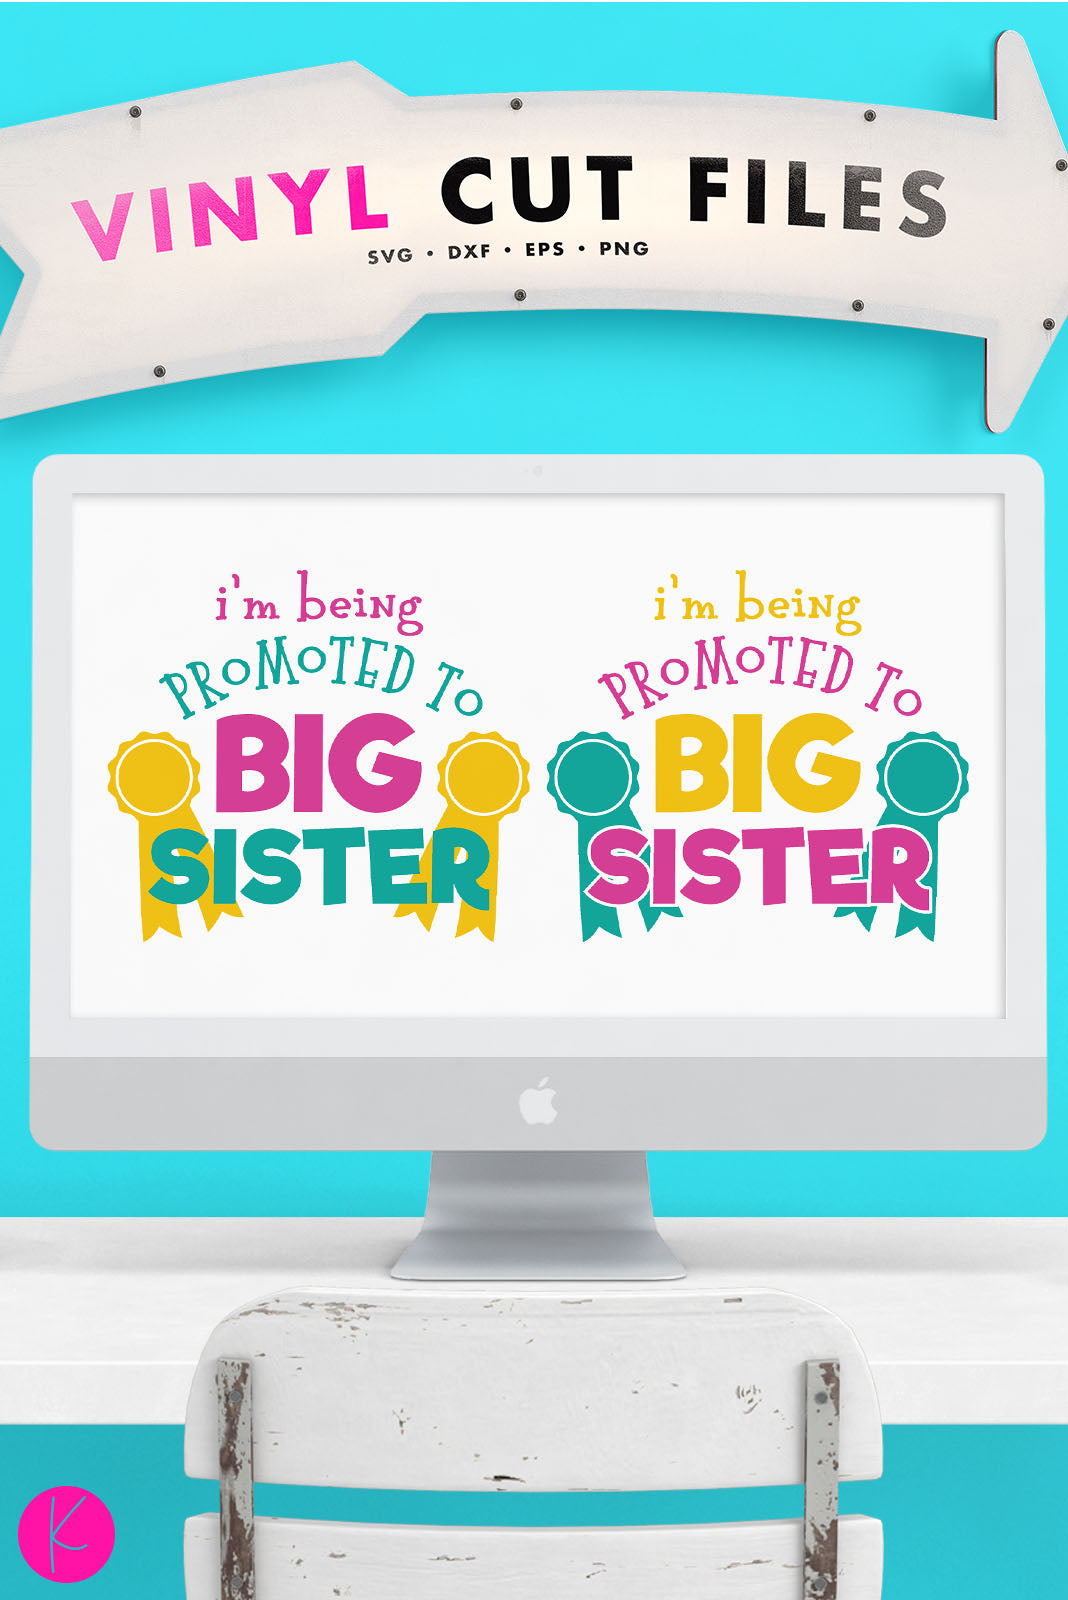 I'm Being Promoted to Big Sister | SVG DXF EPS PNG Cut Files Big Sister Announcement Shirt Design with Award Ribbons | SVG DXF EPS PNG Cut Files Pregnancy announcement shirt design for the soon to be Big Sister.I'm Being Promoted to Big Sister svg is